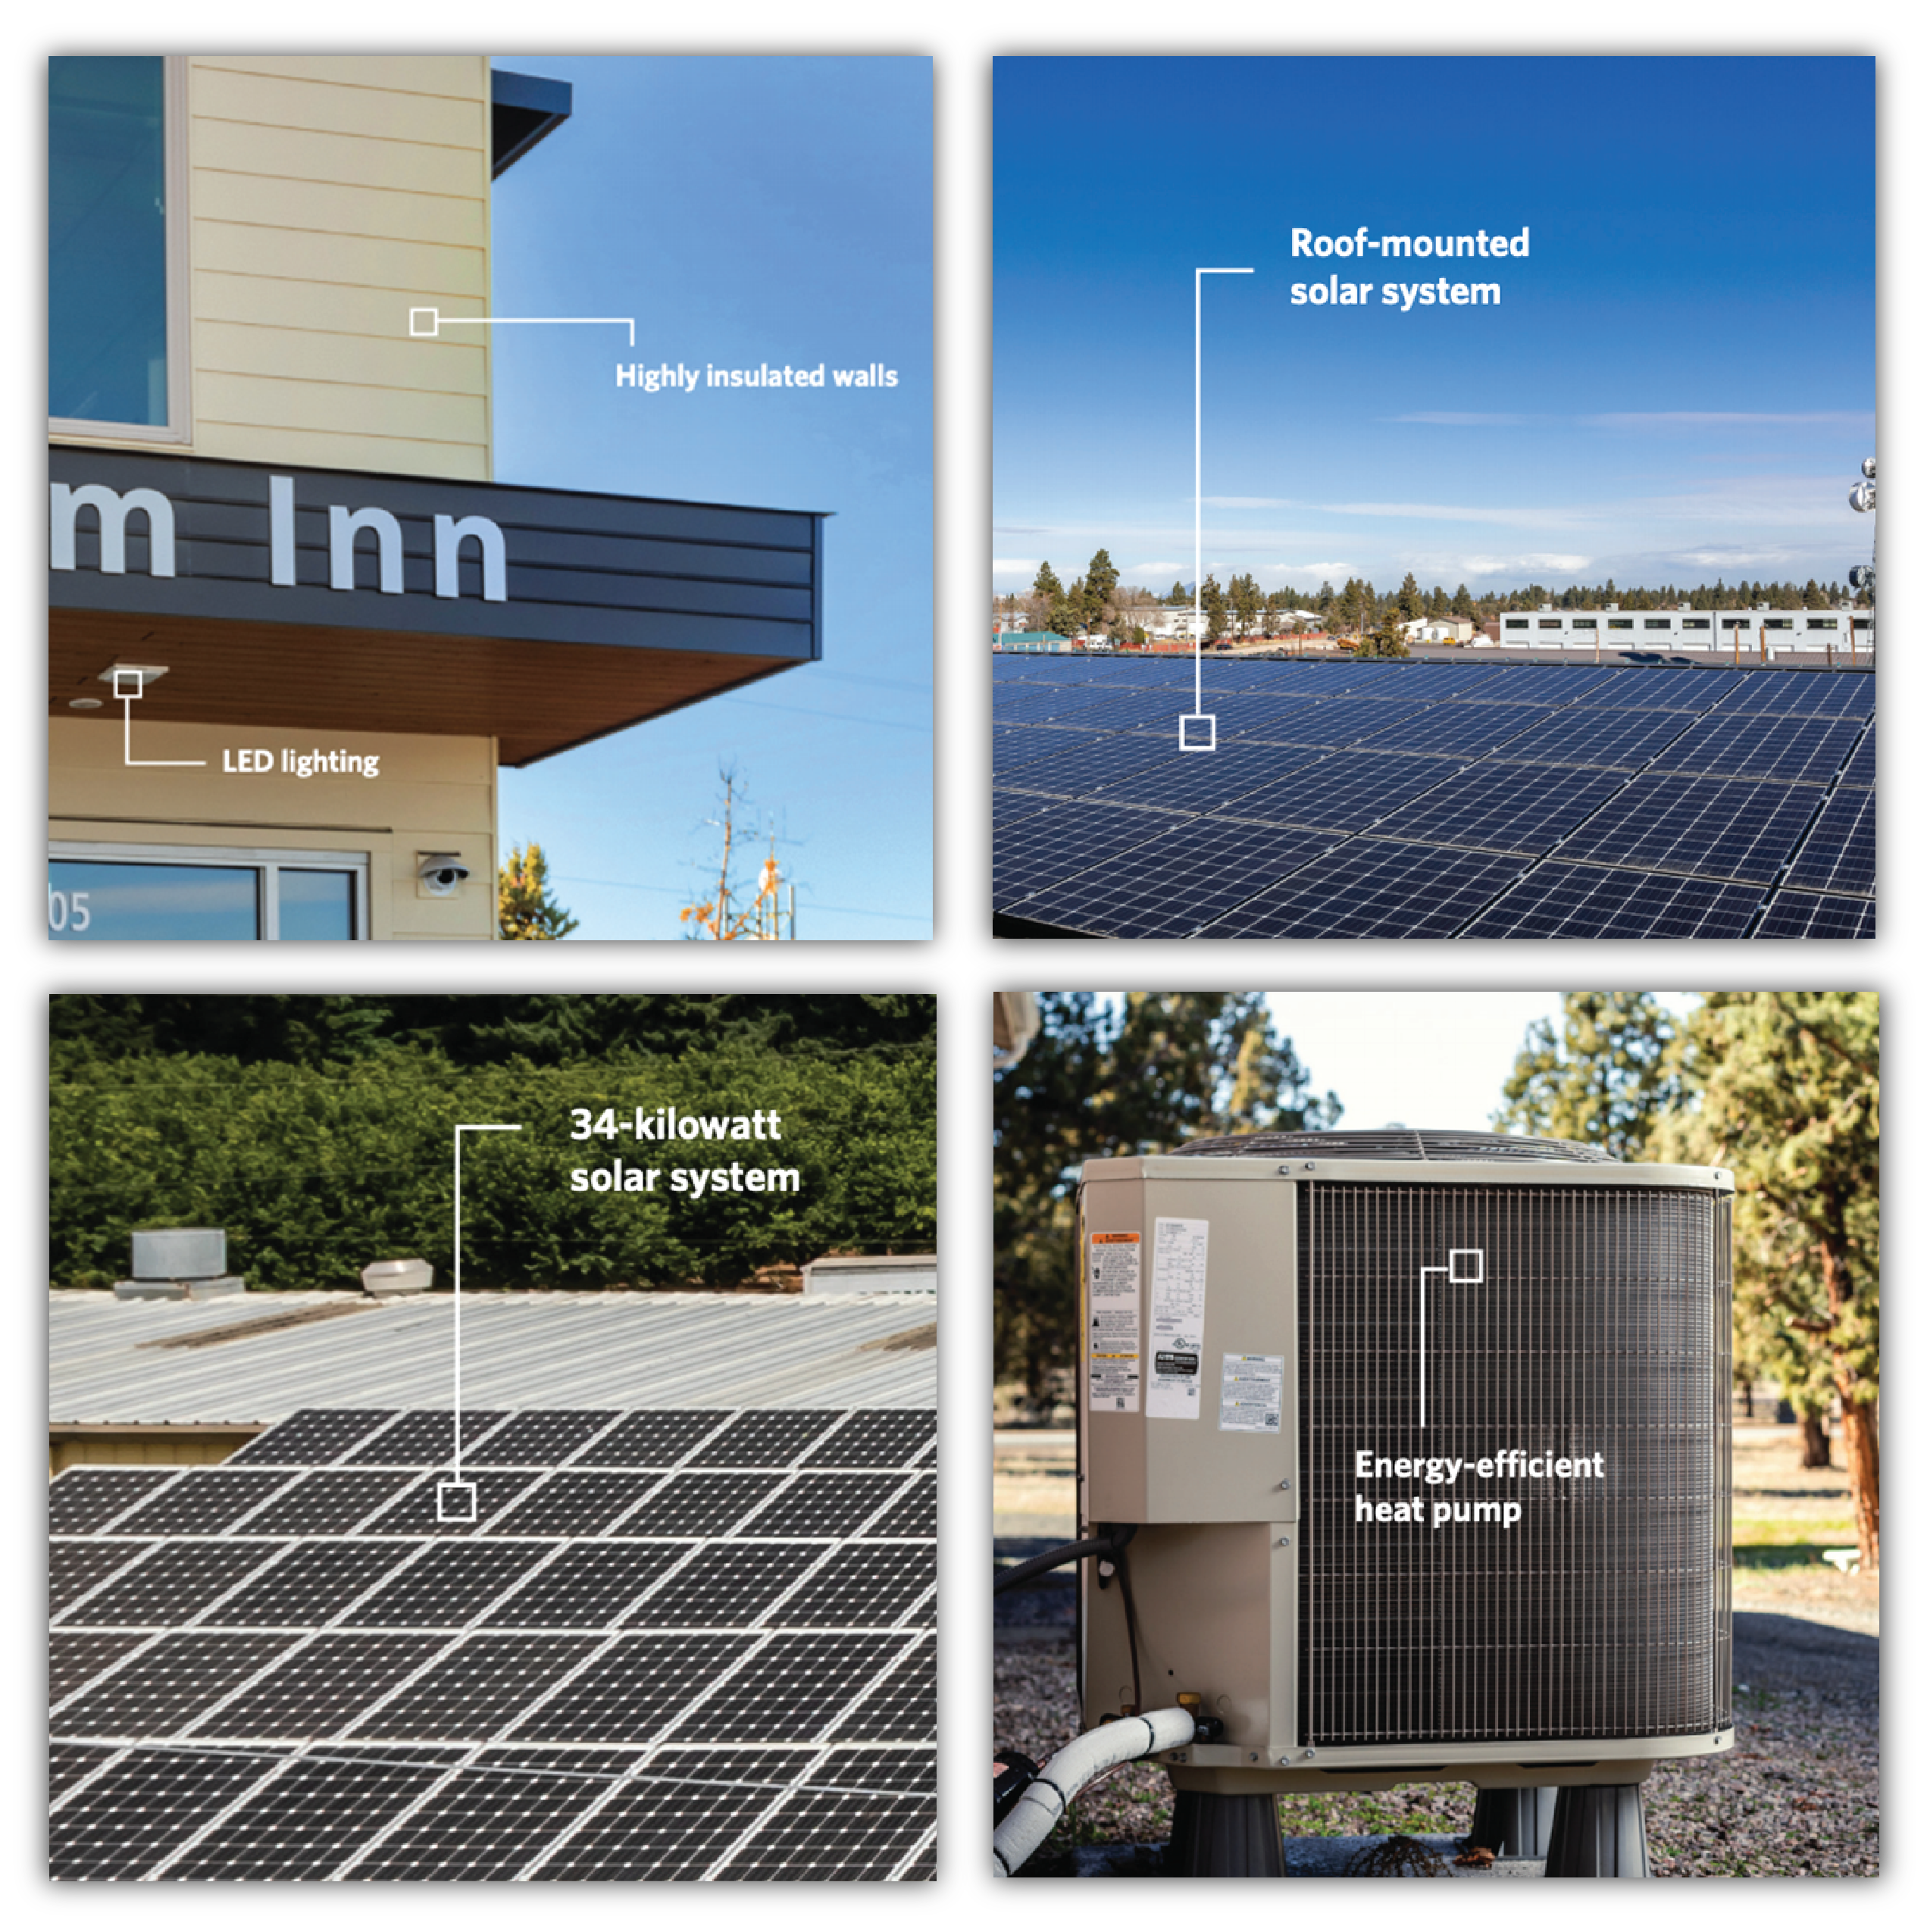 4 sqaures that capture the energy square call outs. One is a roof, one is an air conditioning unit, one is a and two are solar grids